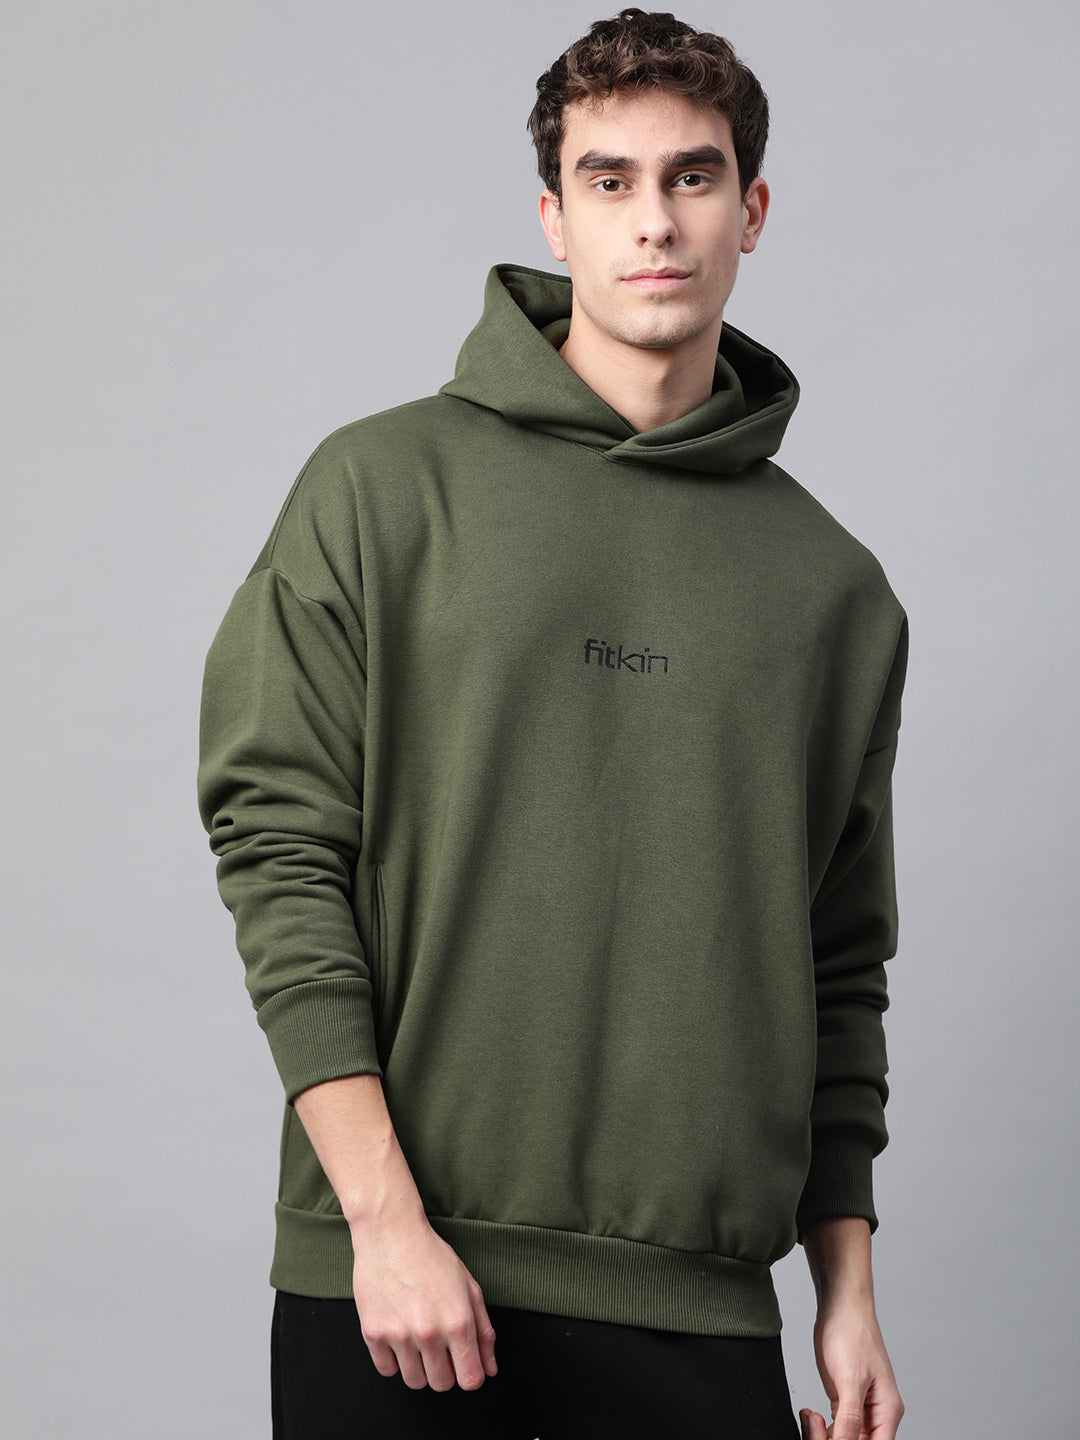 Fitkin Men Olive Green & Black Fleece Winter Hooded Sweatshirt With Brand Logo Print Detail